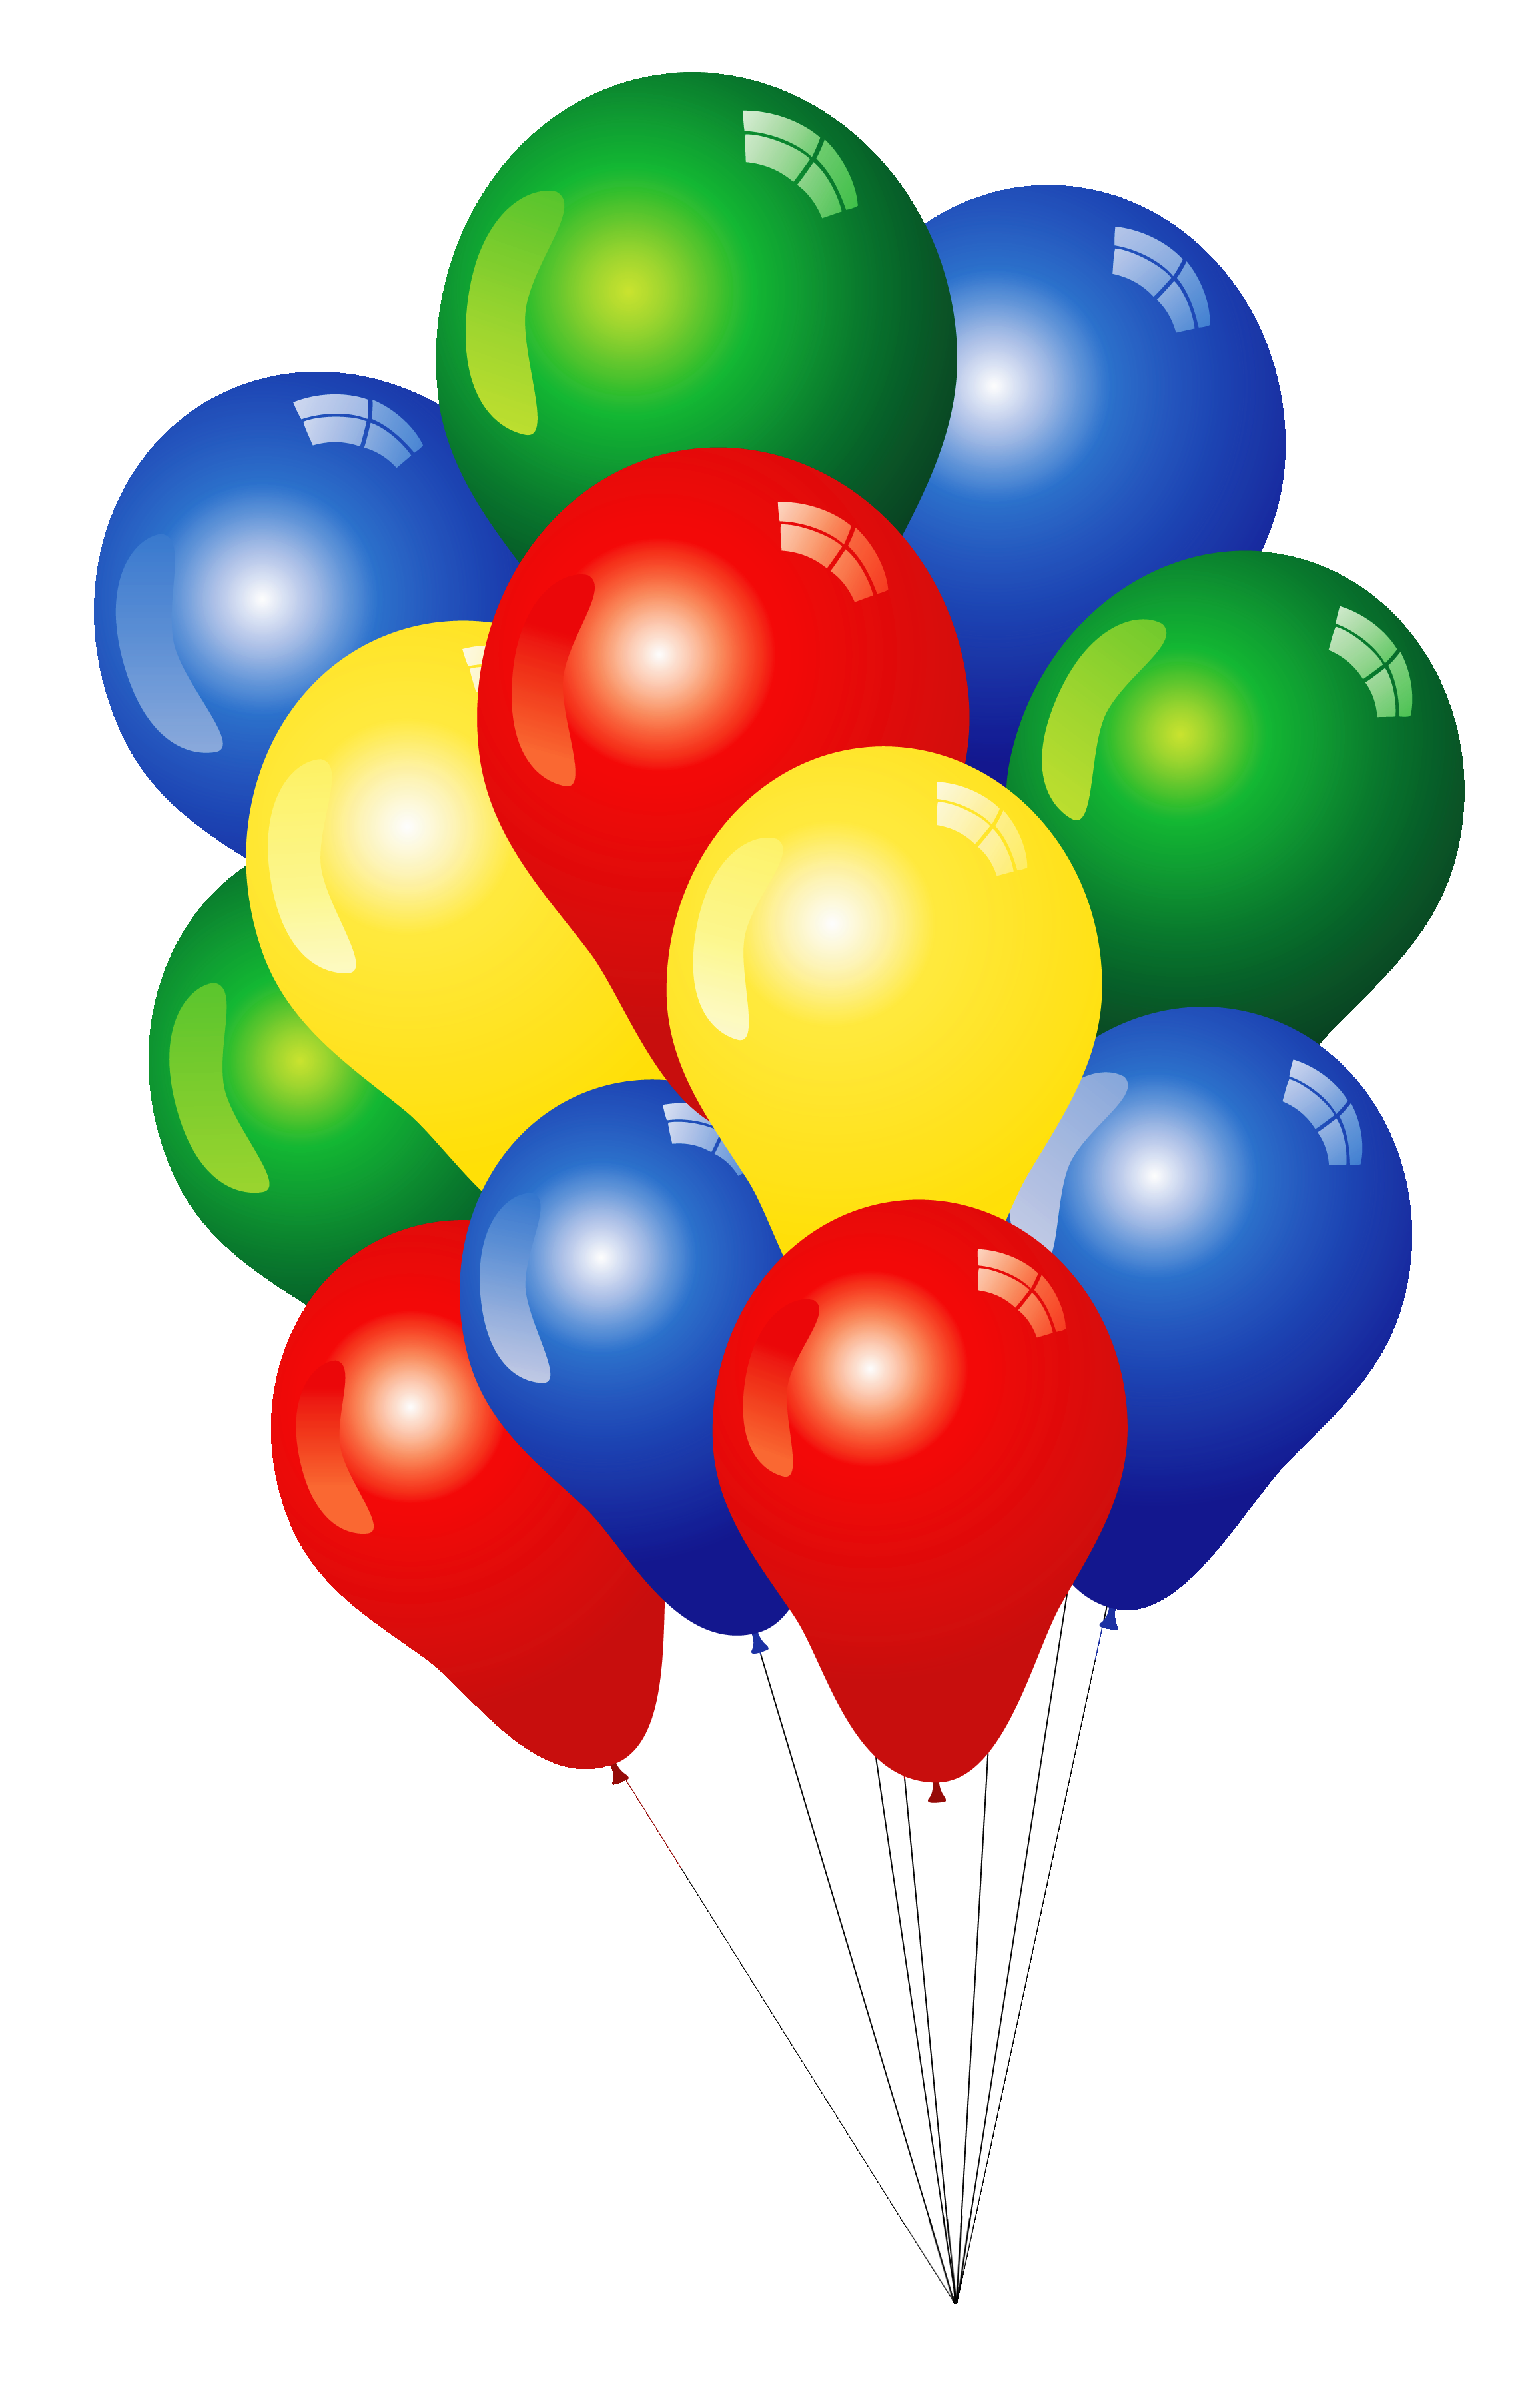 free balloon clip art pictures - photo #11